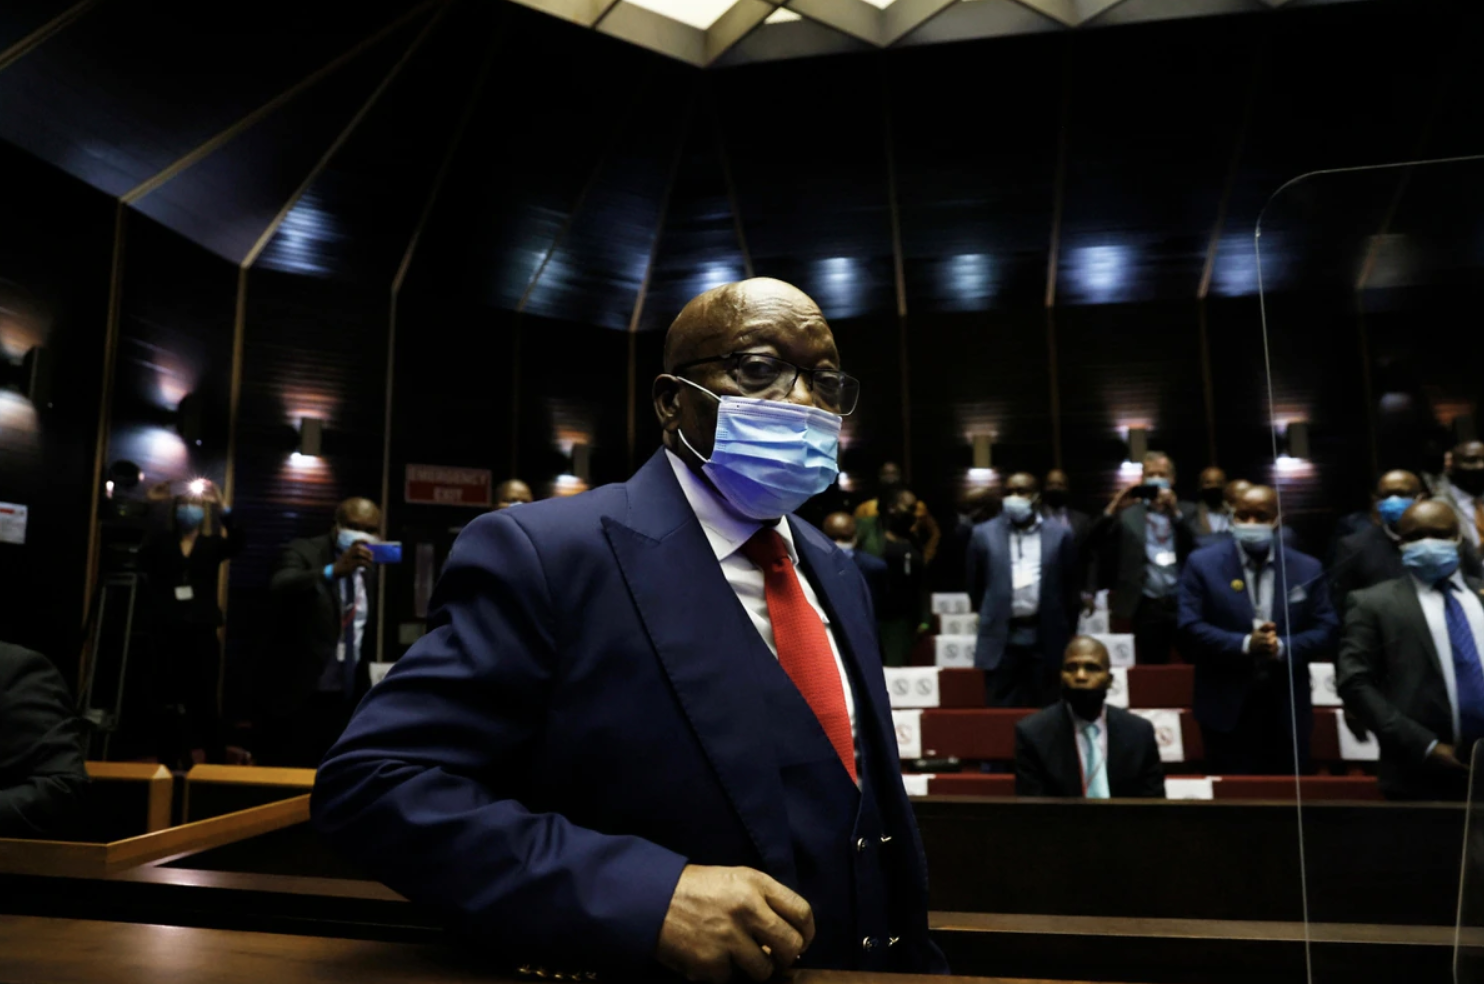 Former South African President's Trial Over Arms Deal Begins